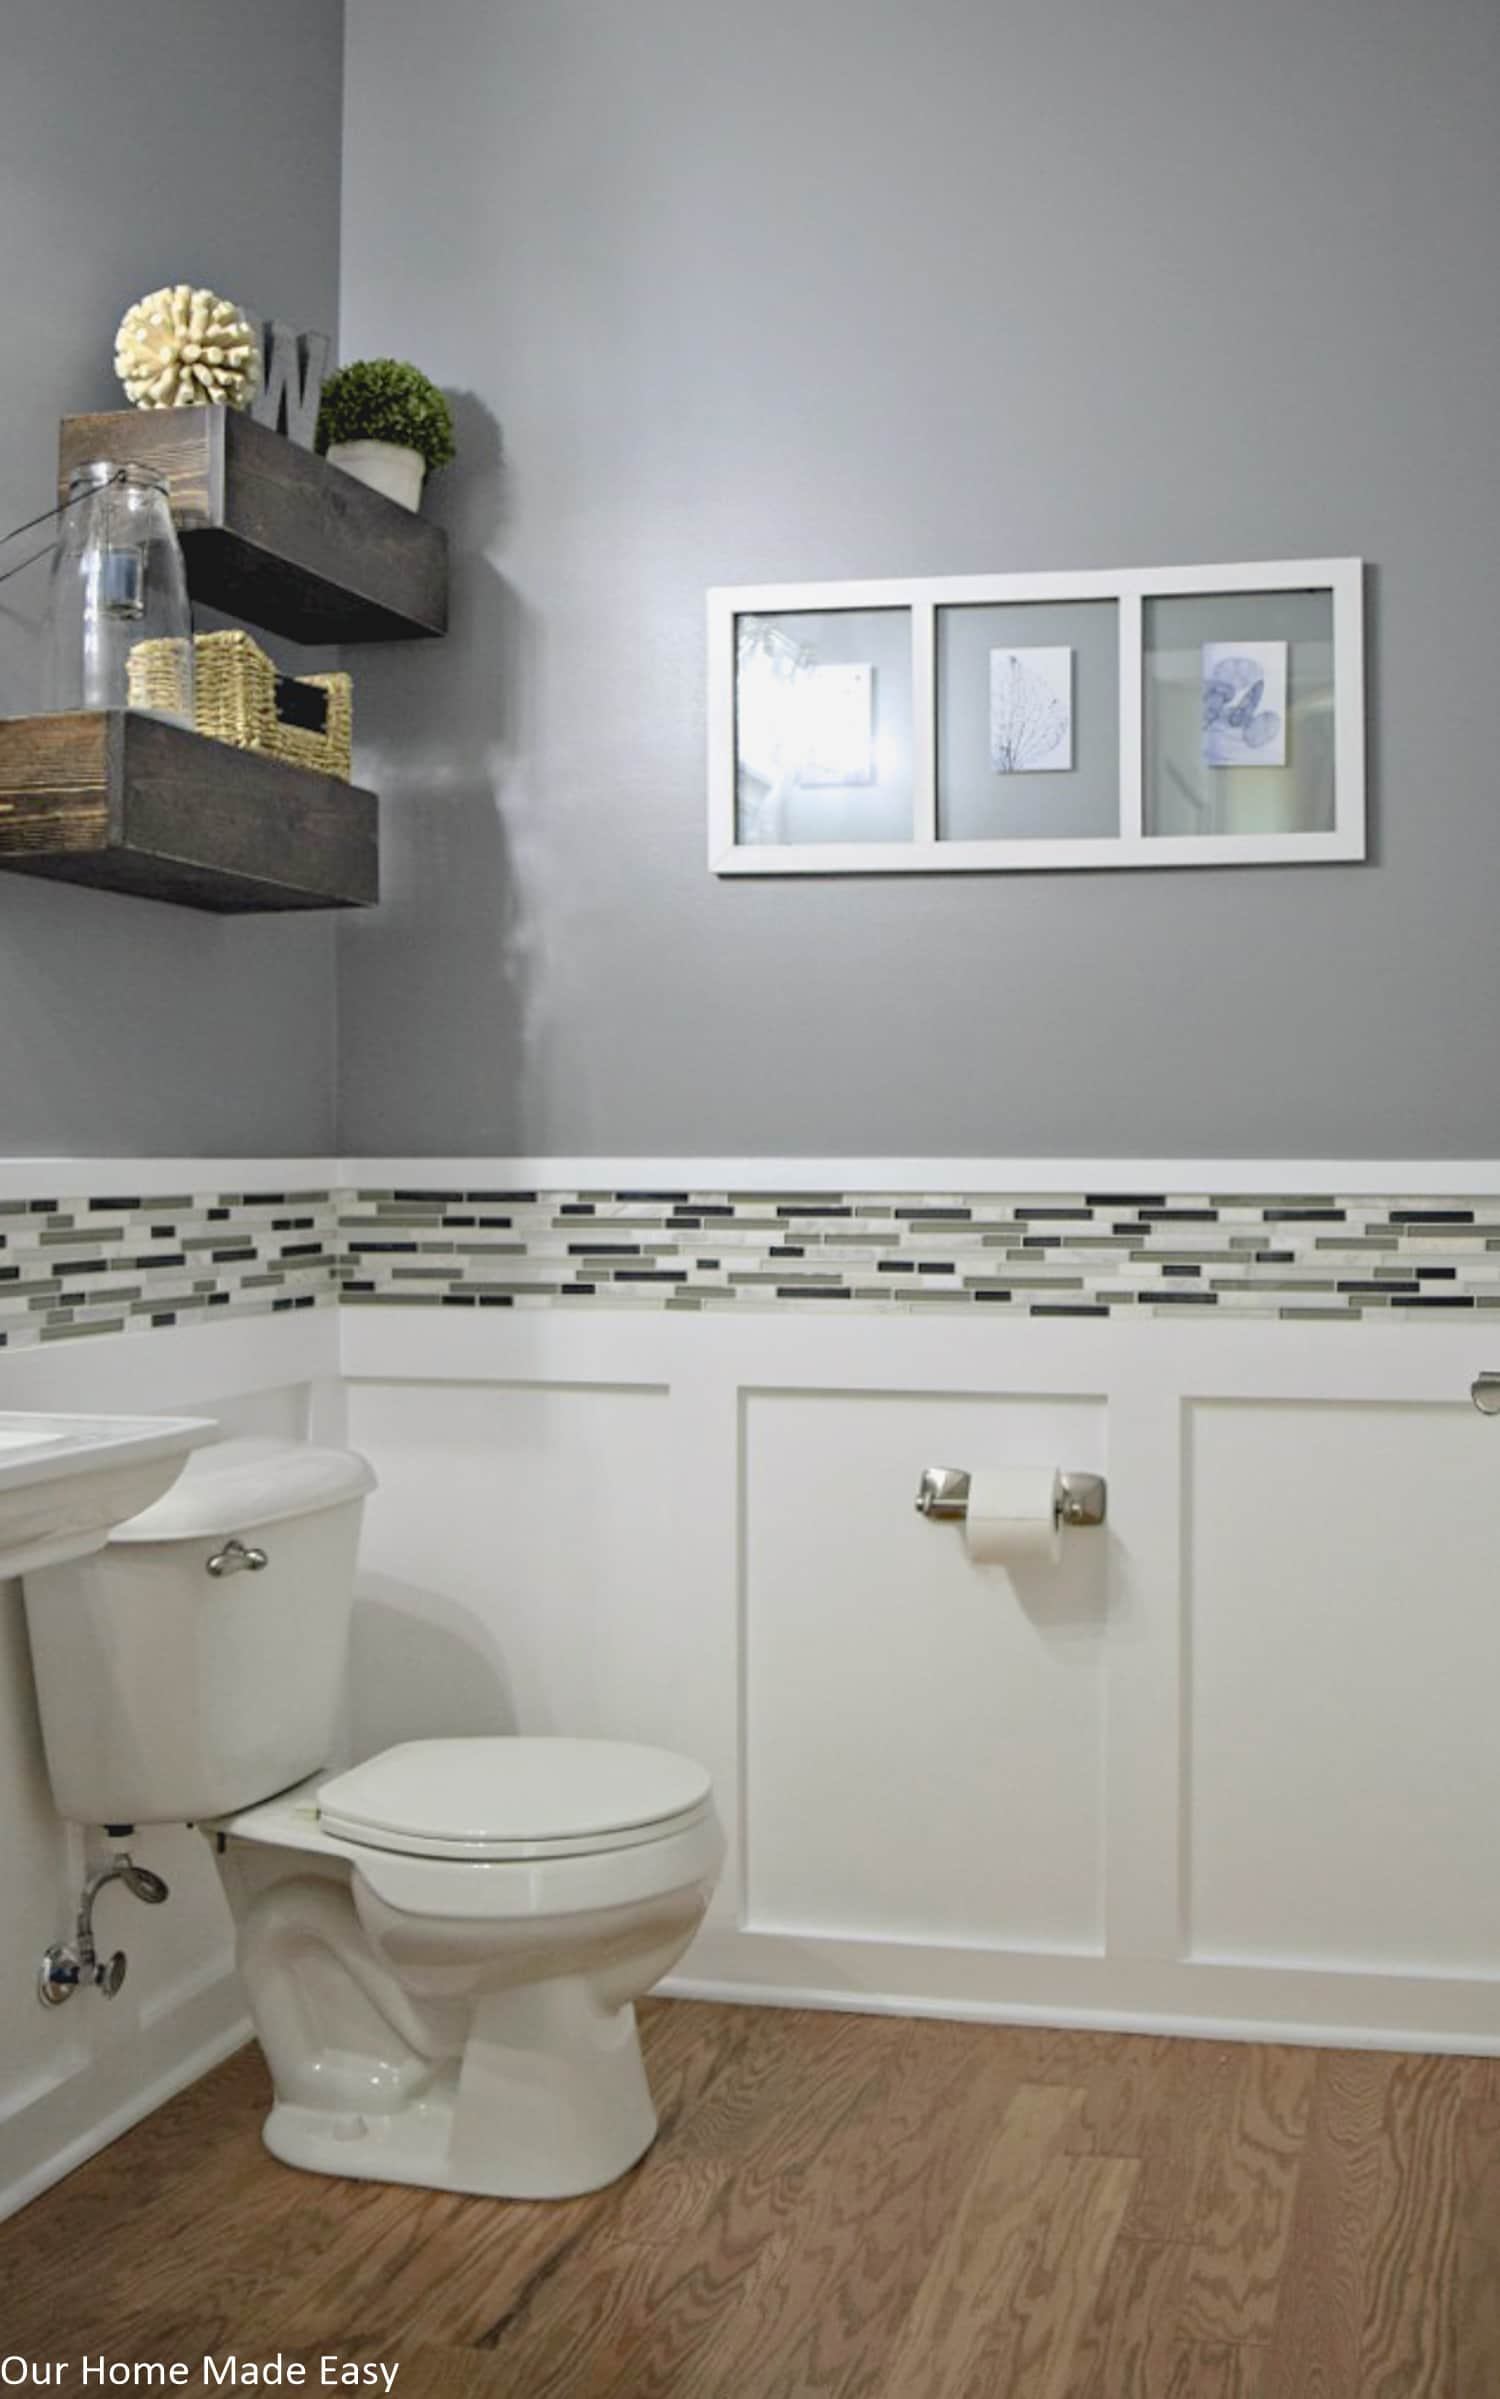 5 Things You Need To Know About Wainscoting Vs Board And